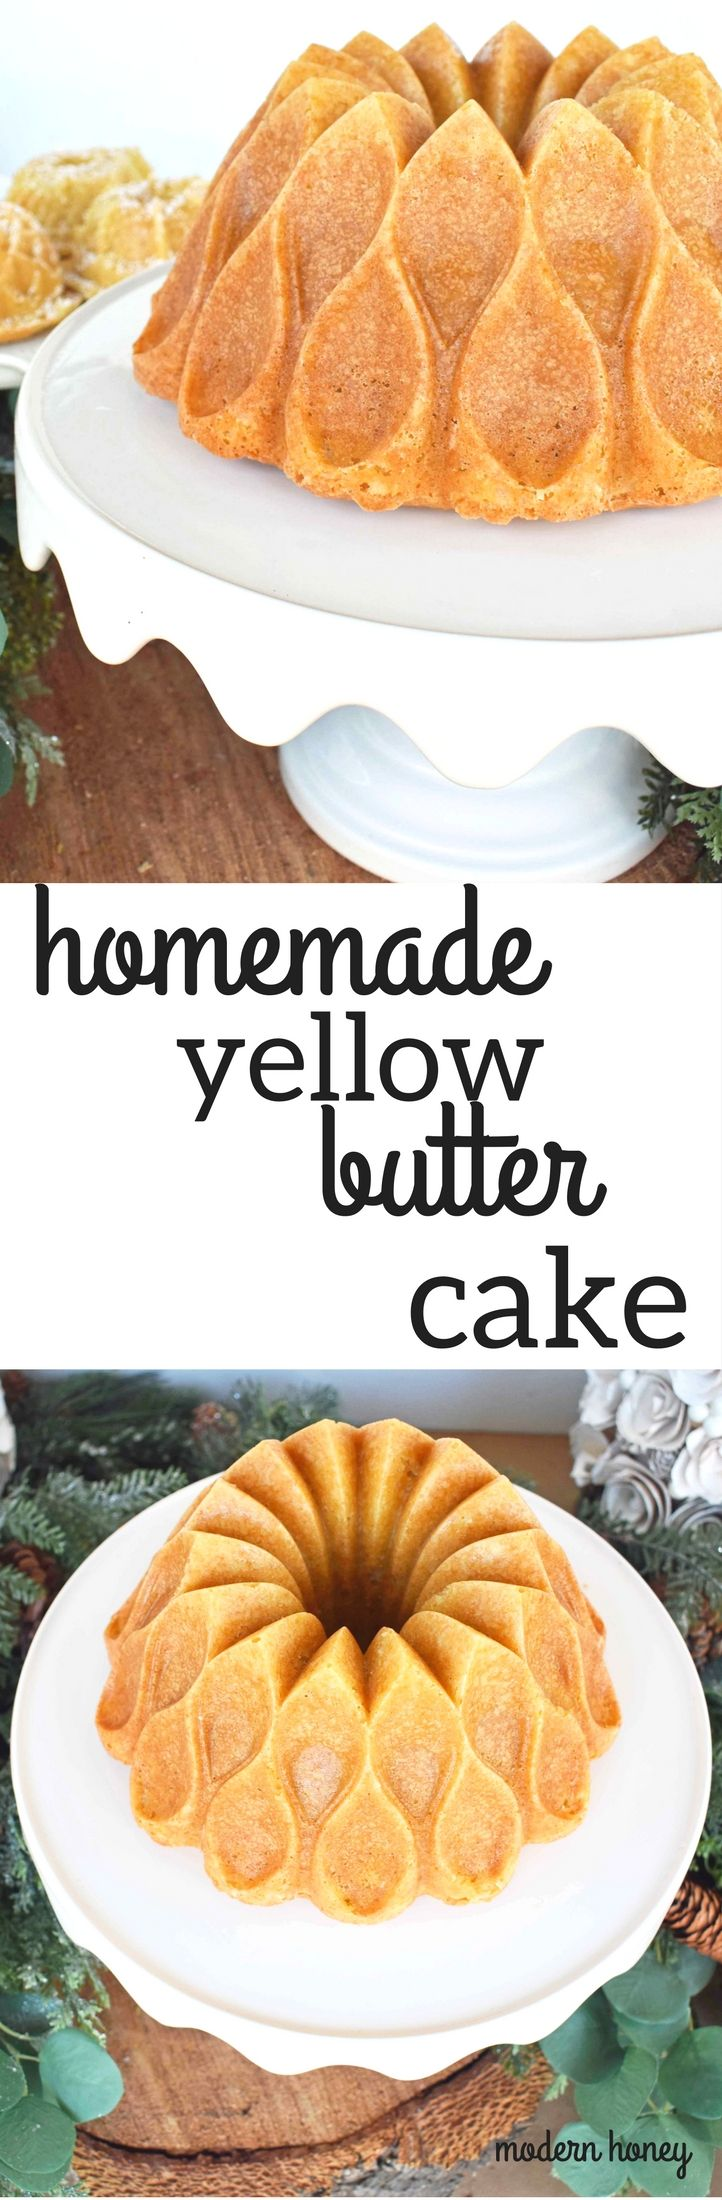 Homemade Yellow Butter Cake made from scratch. Simple cake using only the freshest ingredients to make a perfect yellow butter cake every single time. www.modernhoney.com